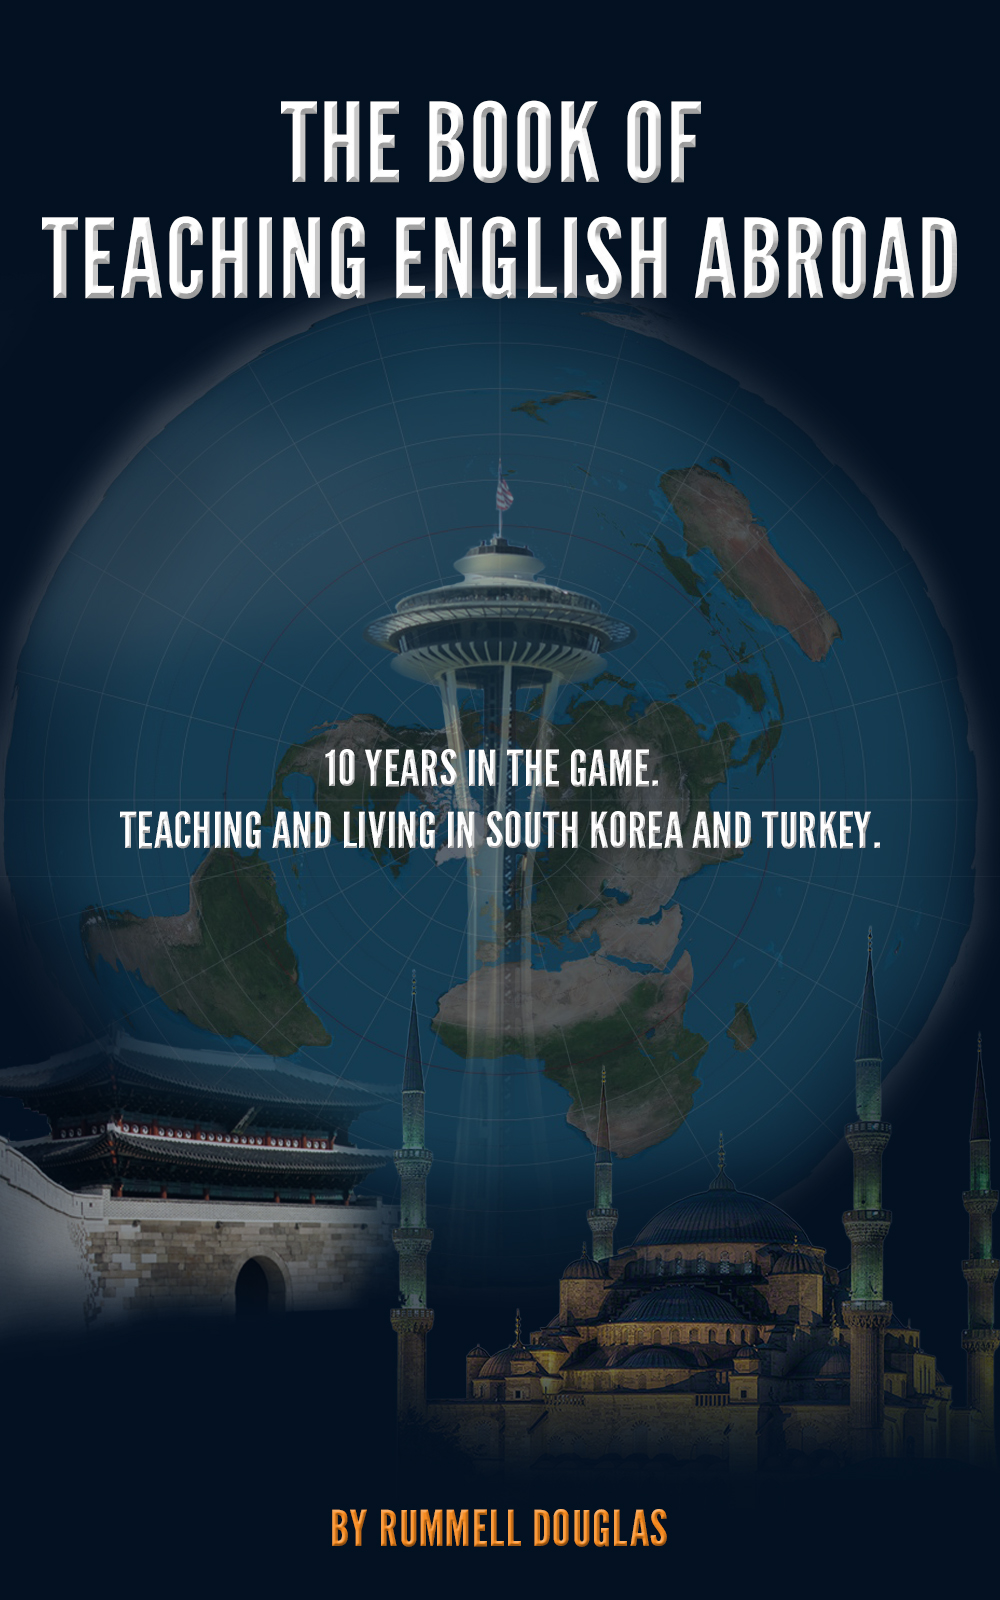 The Book Of Teaching English Abroad-brighter.jpg